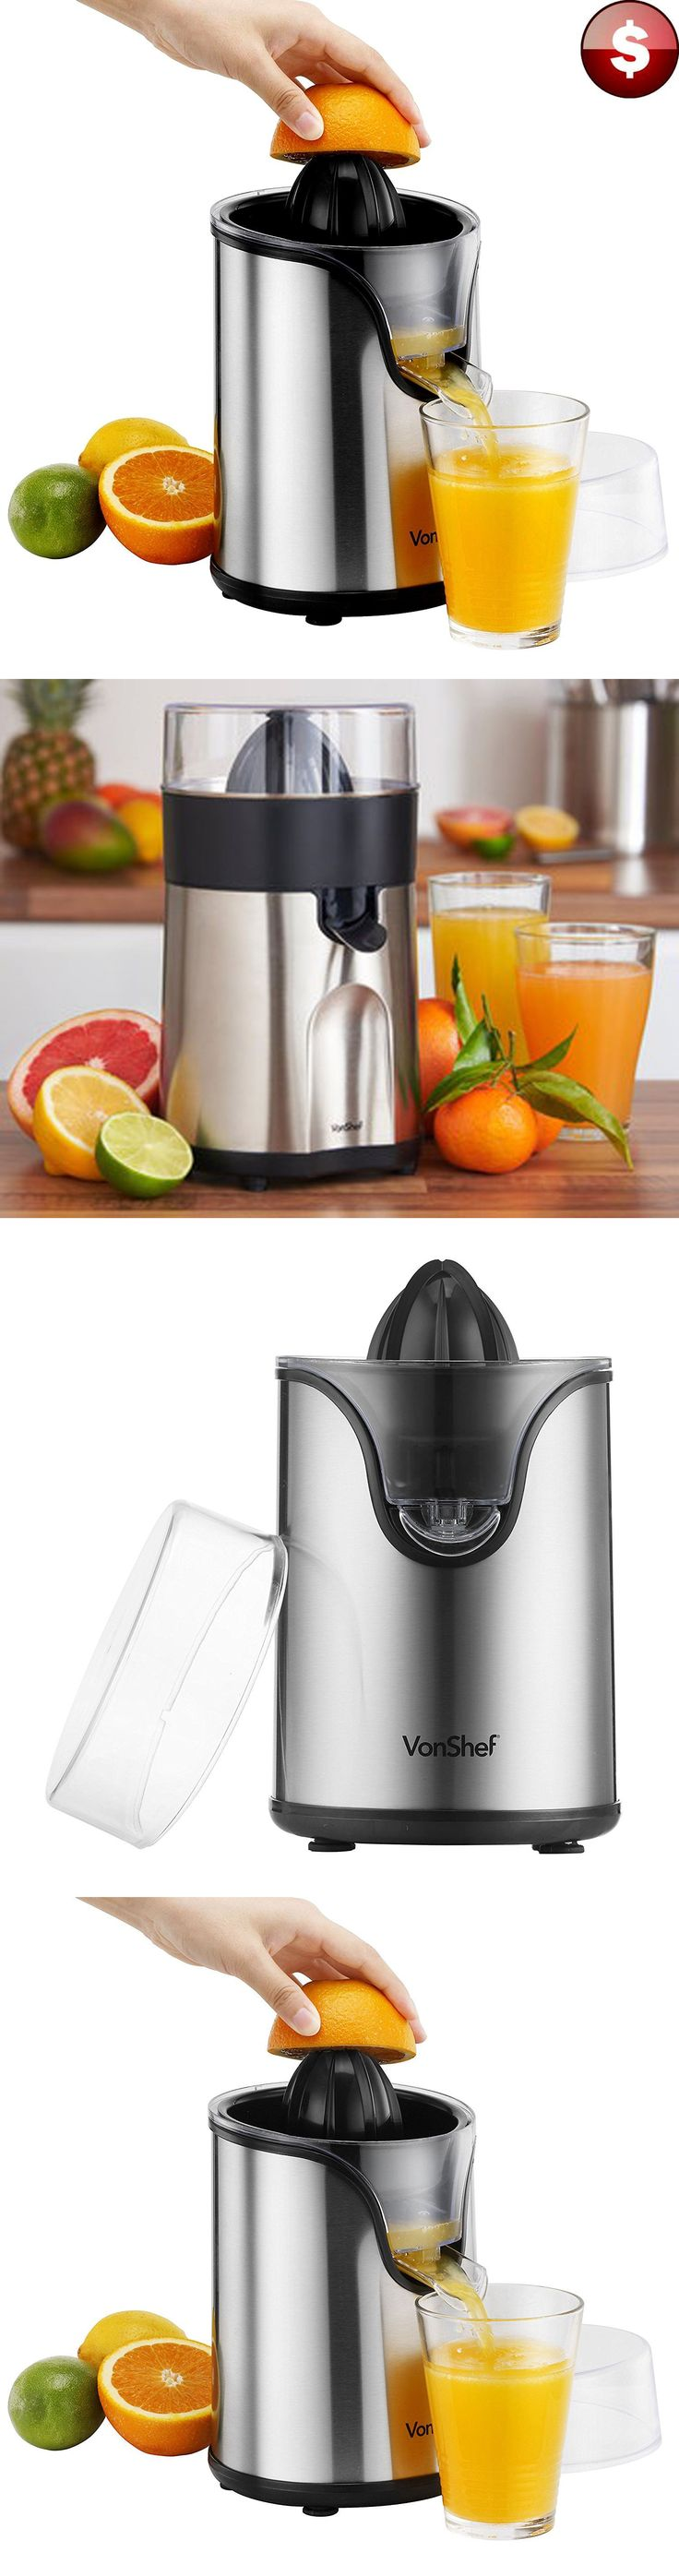 Small Kitchen Appliances: Electric Citrus Juicer Orange Fruit Lemon Squeezer Extractor Juice Press Machine BUY IT NOW ONLY: $37.31